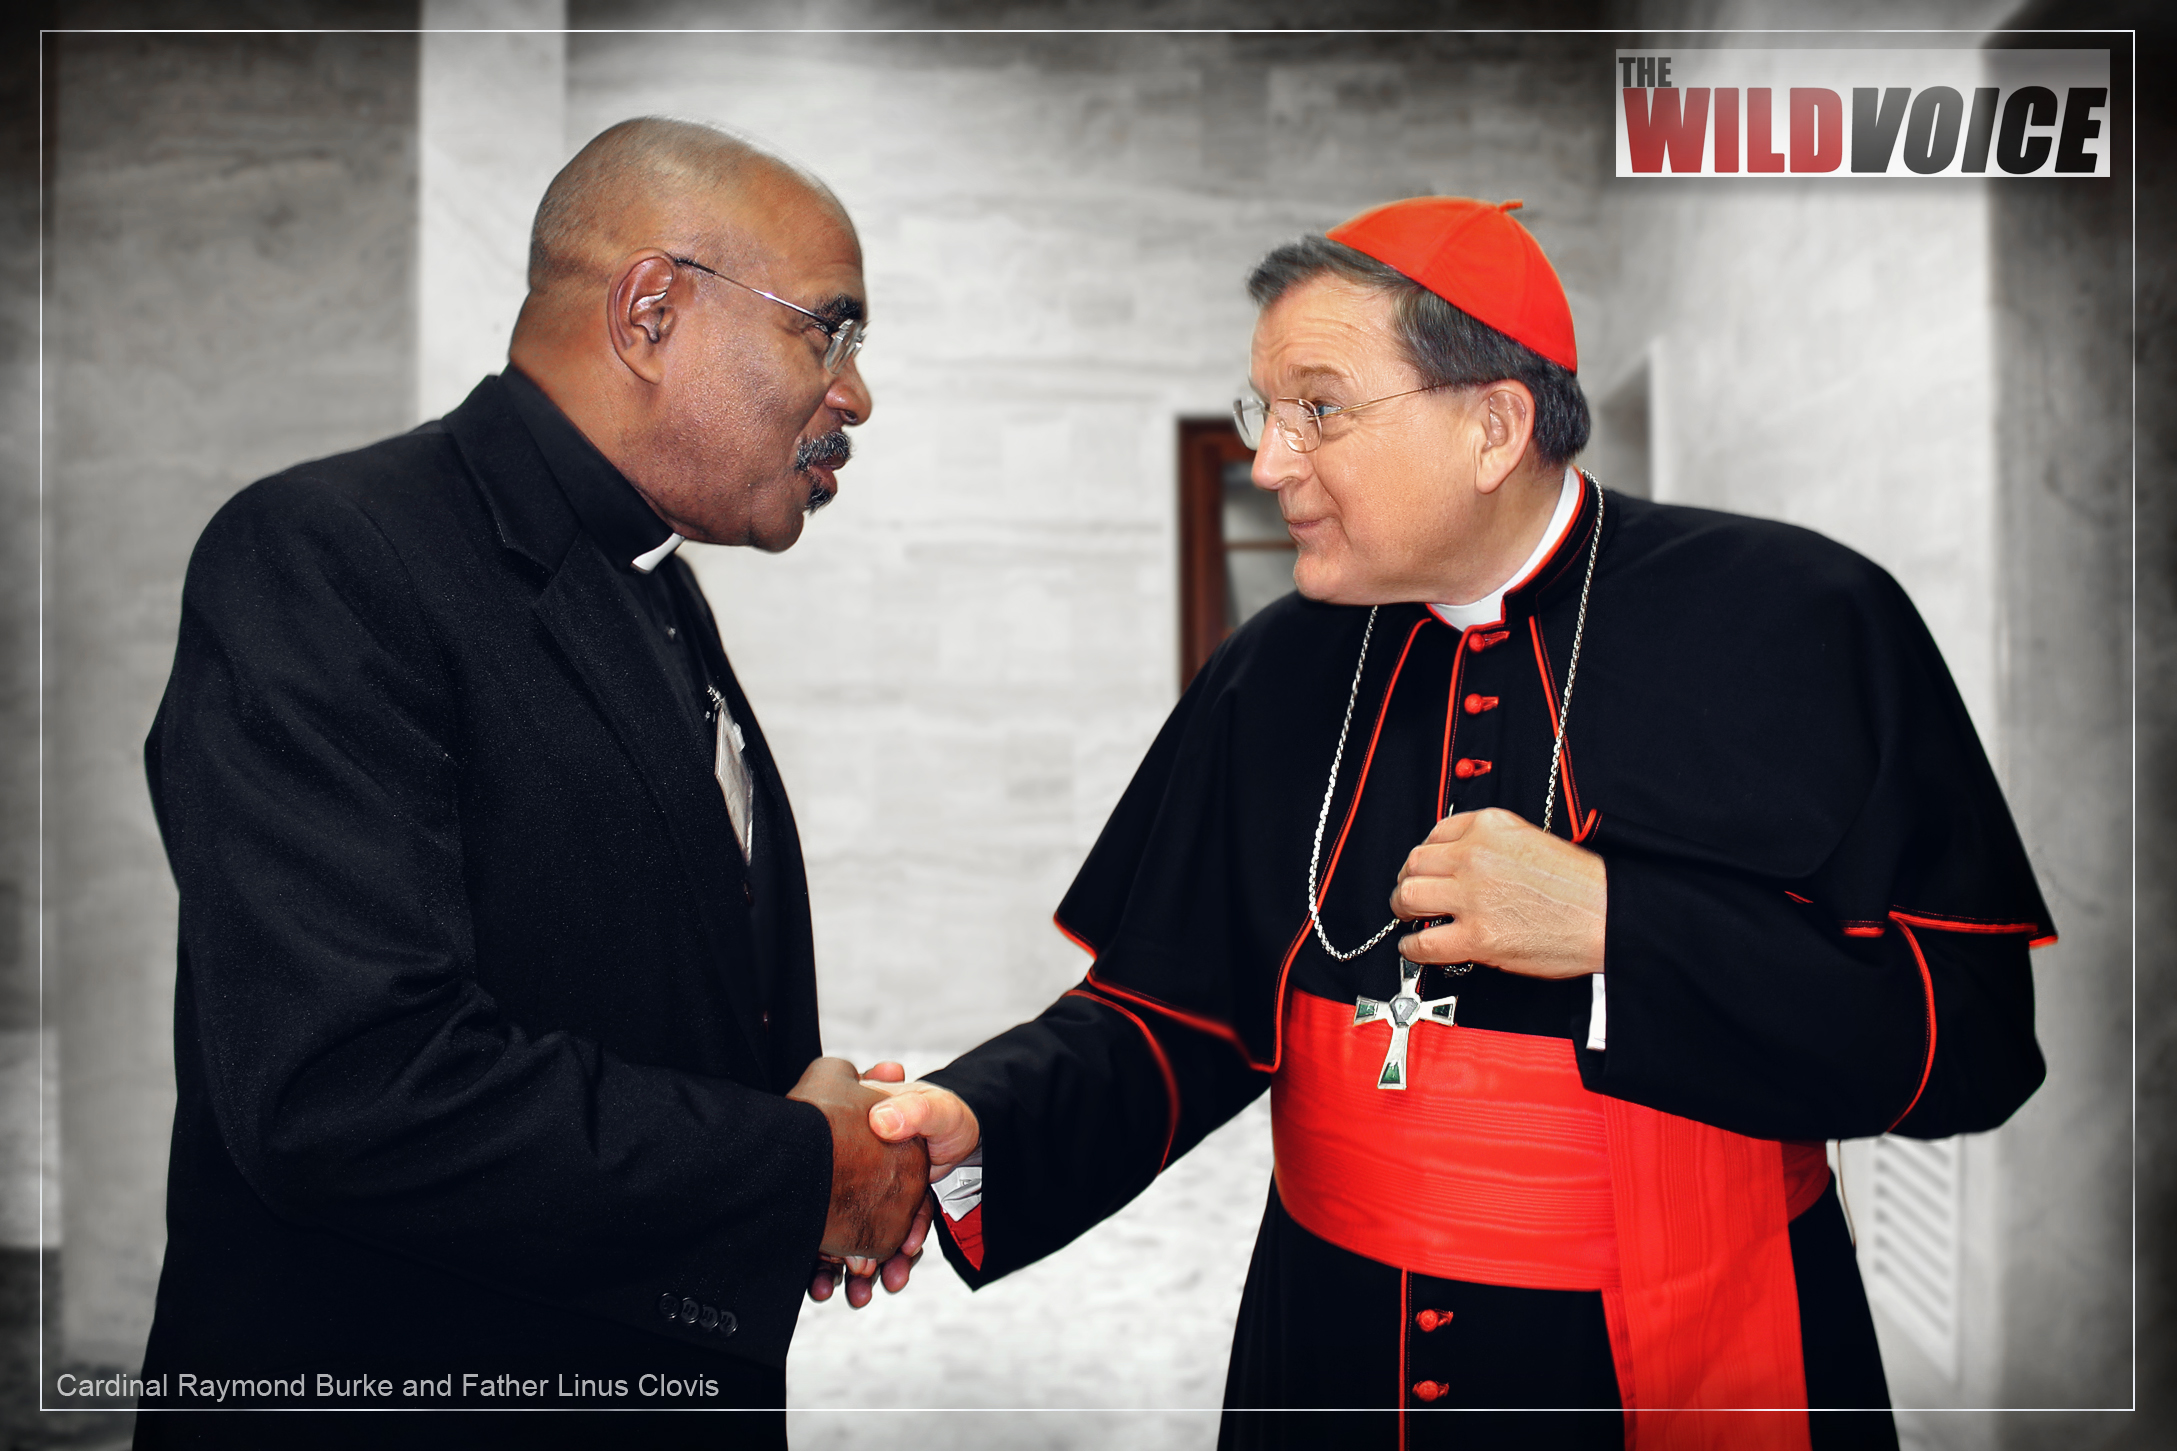 Cardinal, Raymond Burke, Father, Linus Clovis, truth, slander, lies, defamation, pope francis, false prophet, wild voice, bergoglio, catholic, church, francis effect